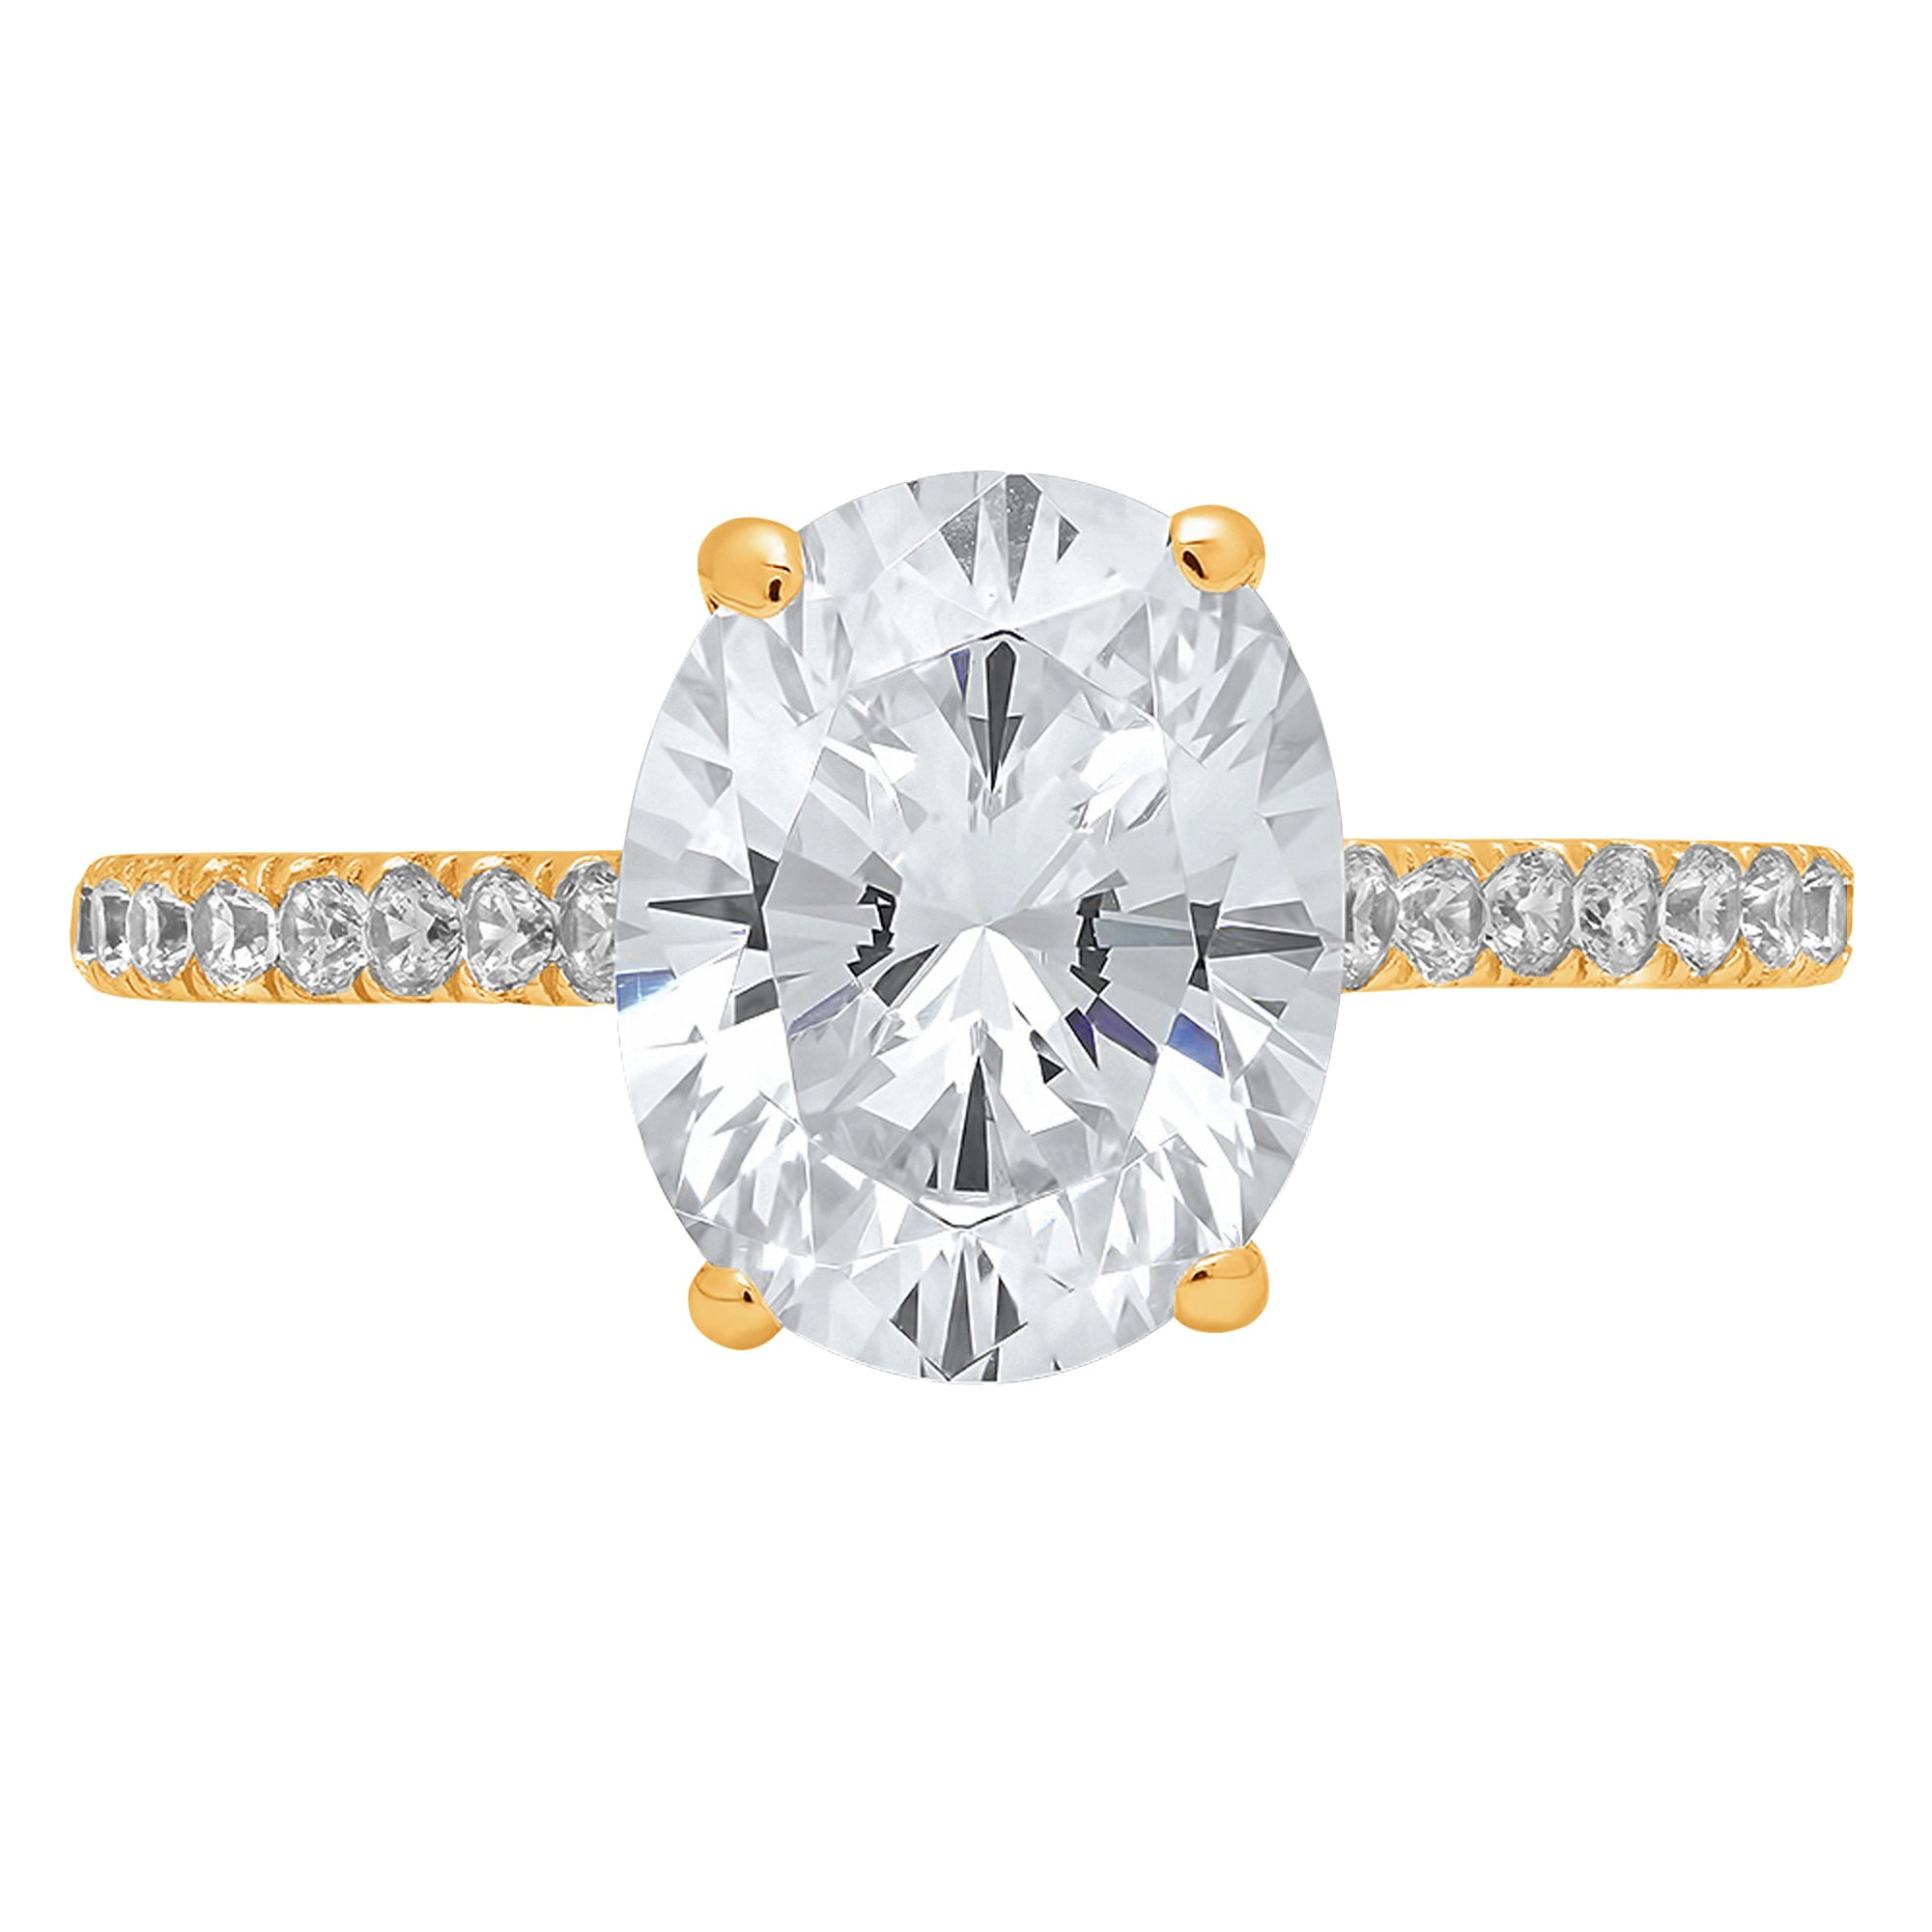 1.89ct Brilliant Oval Cut Accent Solitaire Engagement Anniversary Wedding Bridal Promise Ring in Solid 14k Yellow Gold for Women